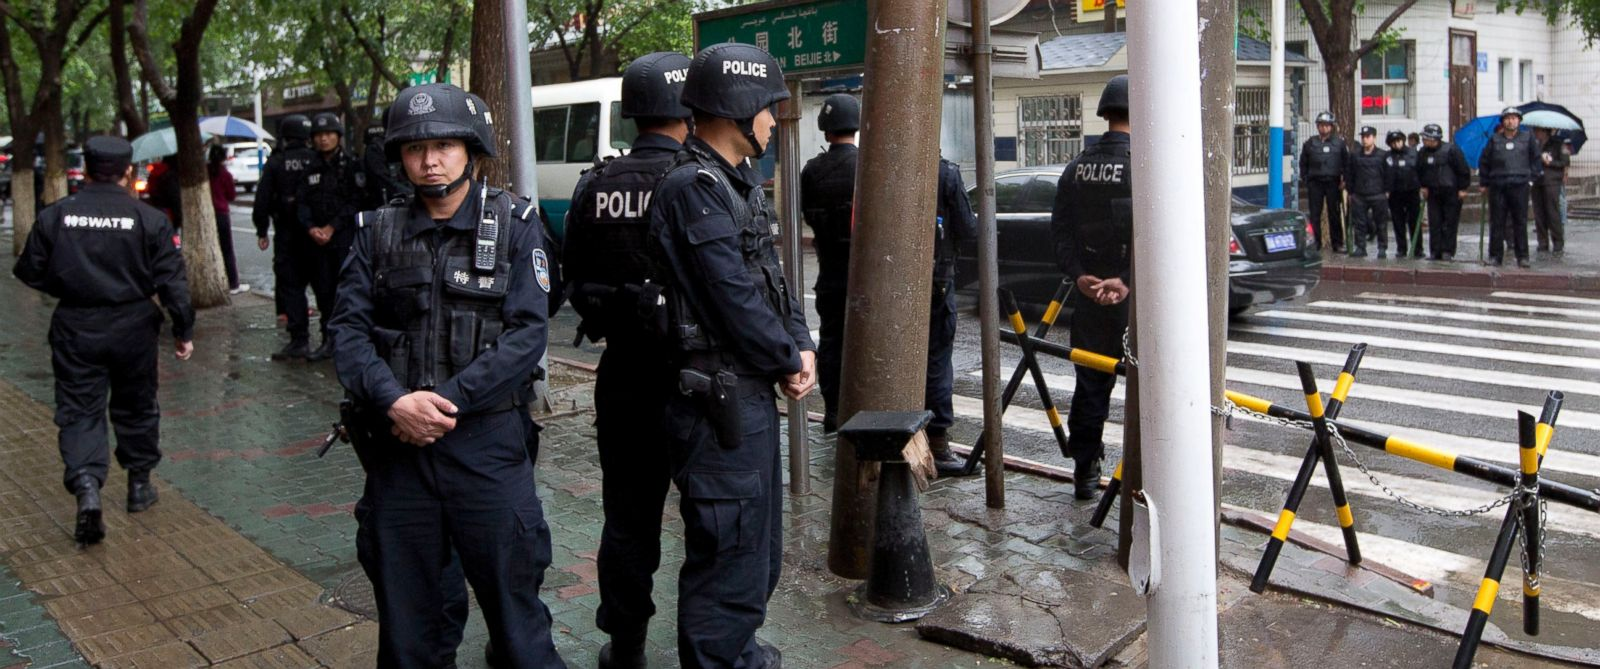 PHOTO: Armed policemen stand guard near the site of an explosion in Urumqi, northwest Chinas Xinjiang region, May 22, 2014.